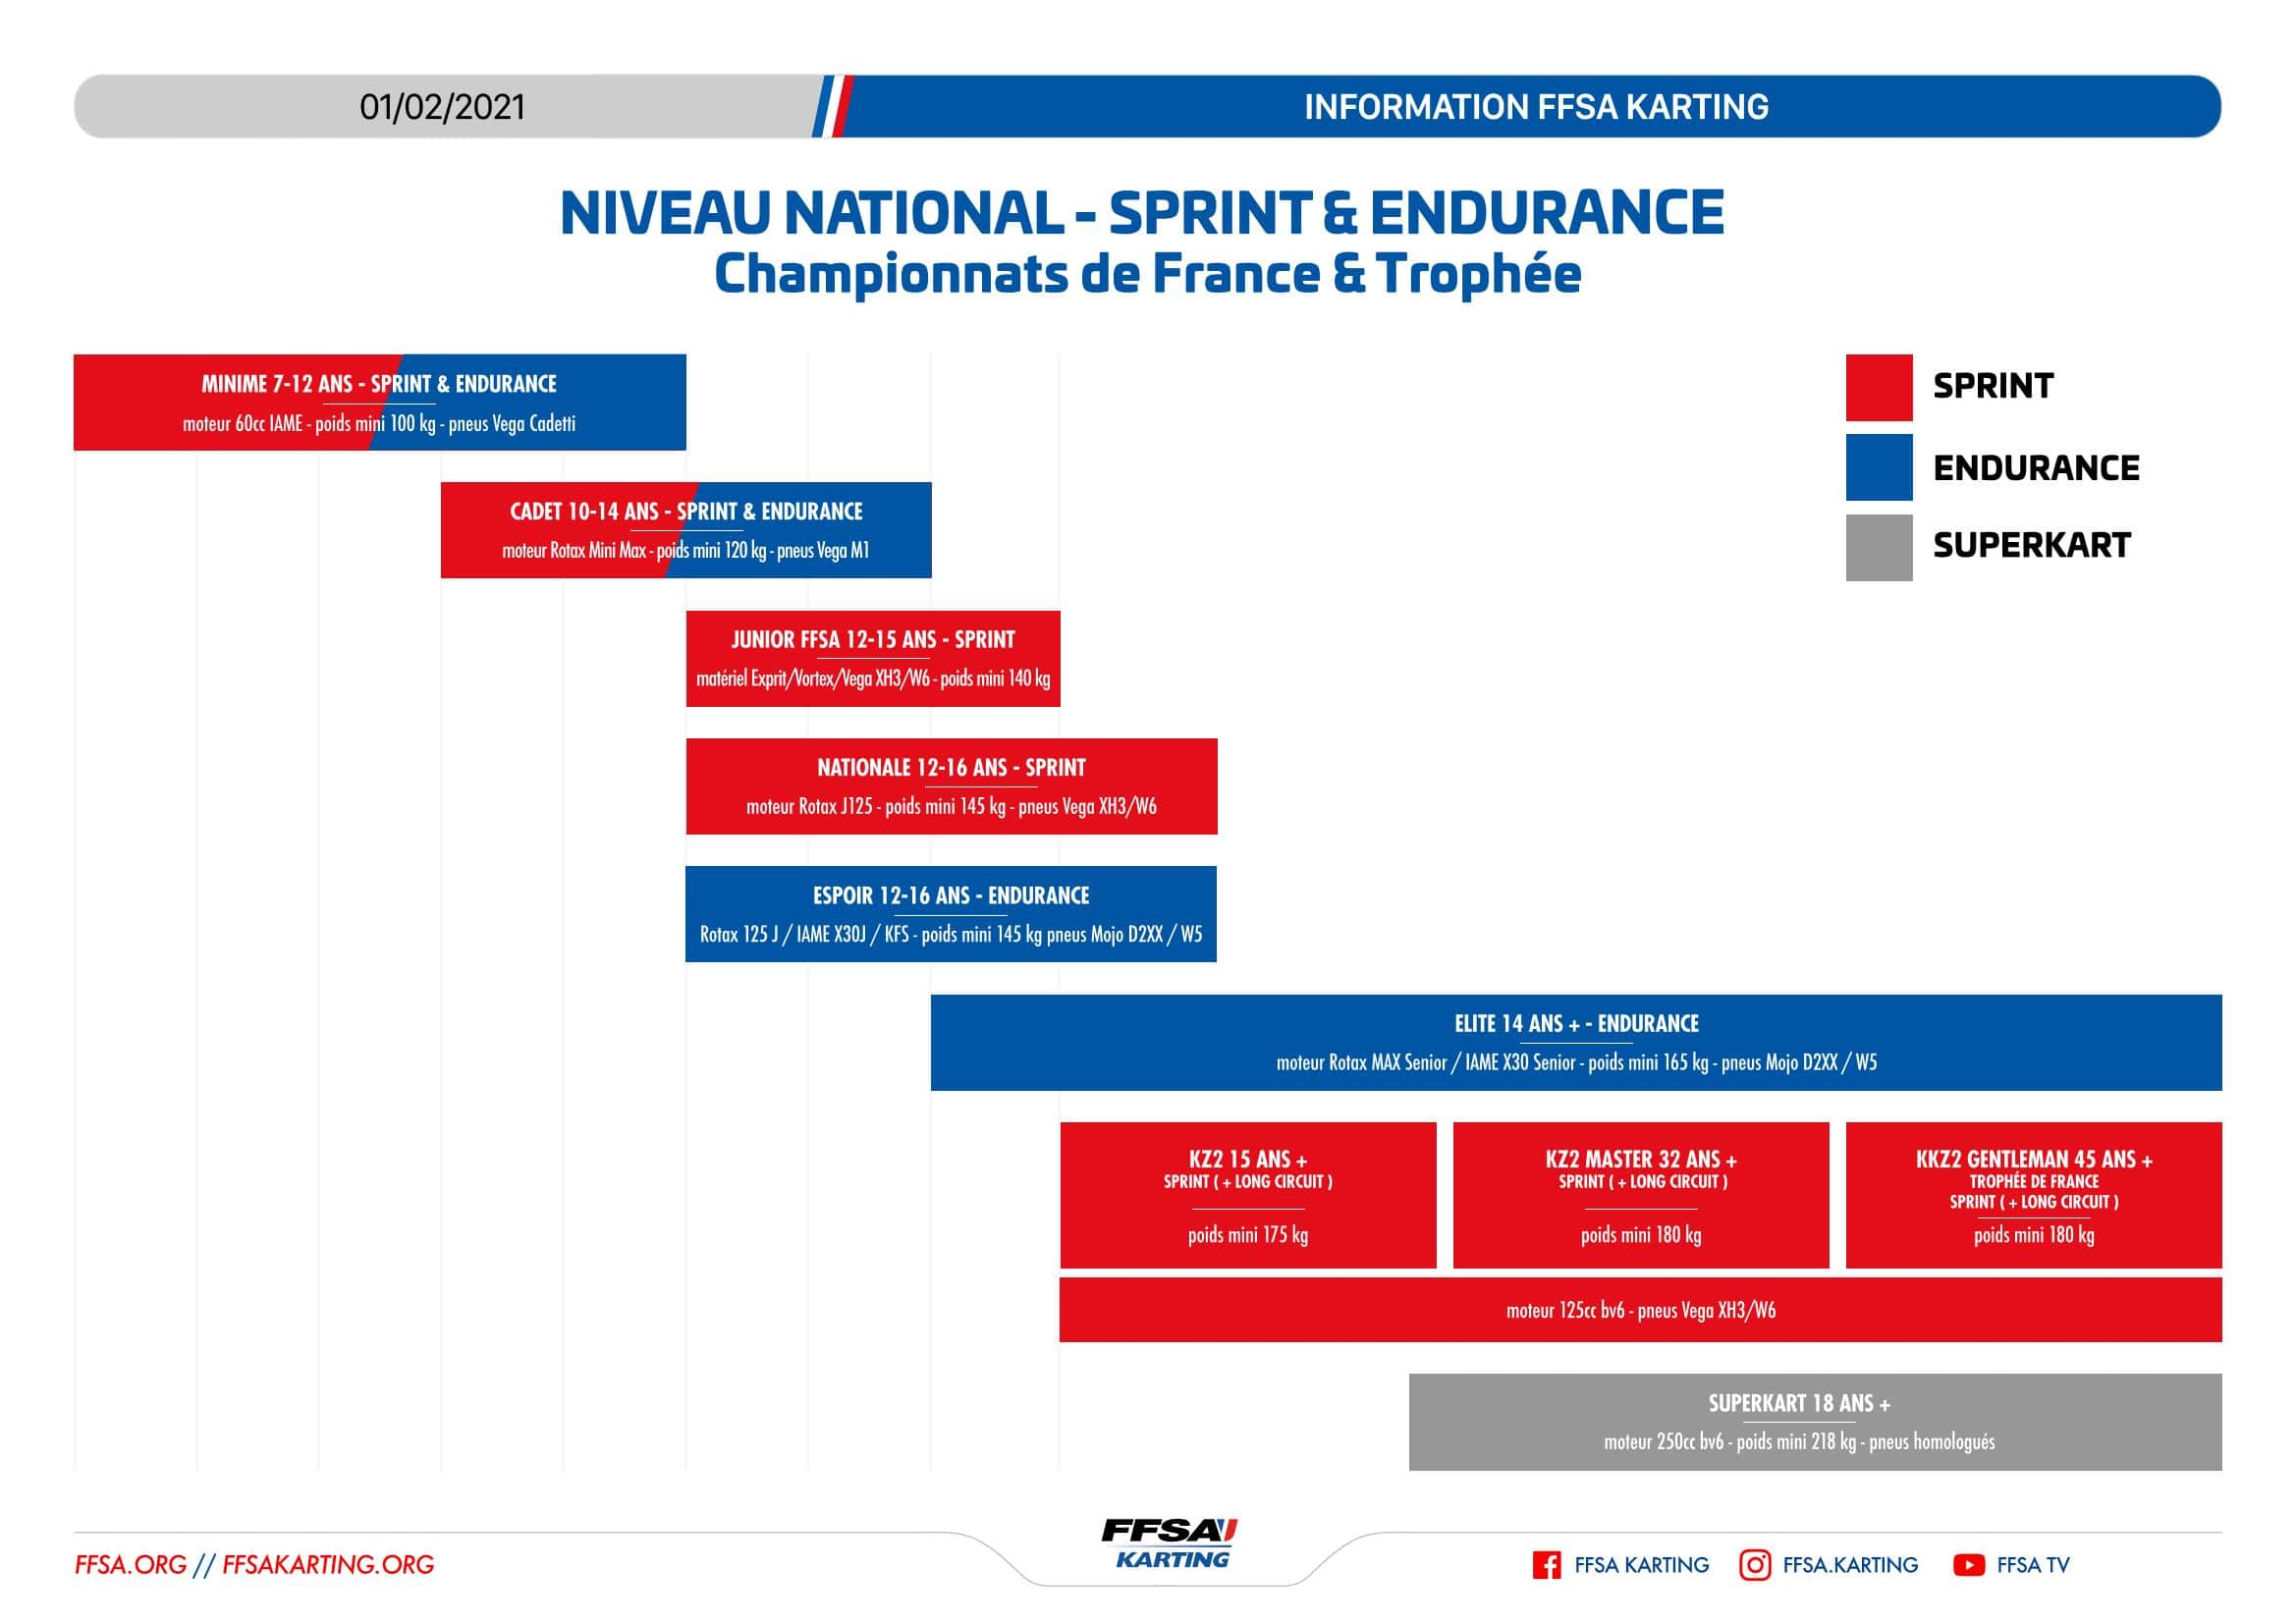 FFSA Karting Championnats et categories 010221 min